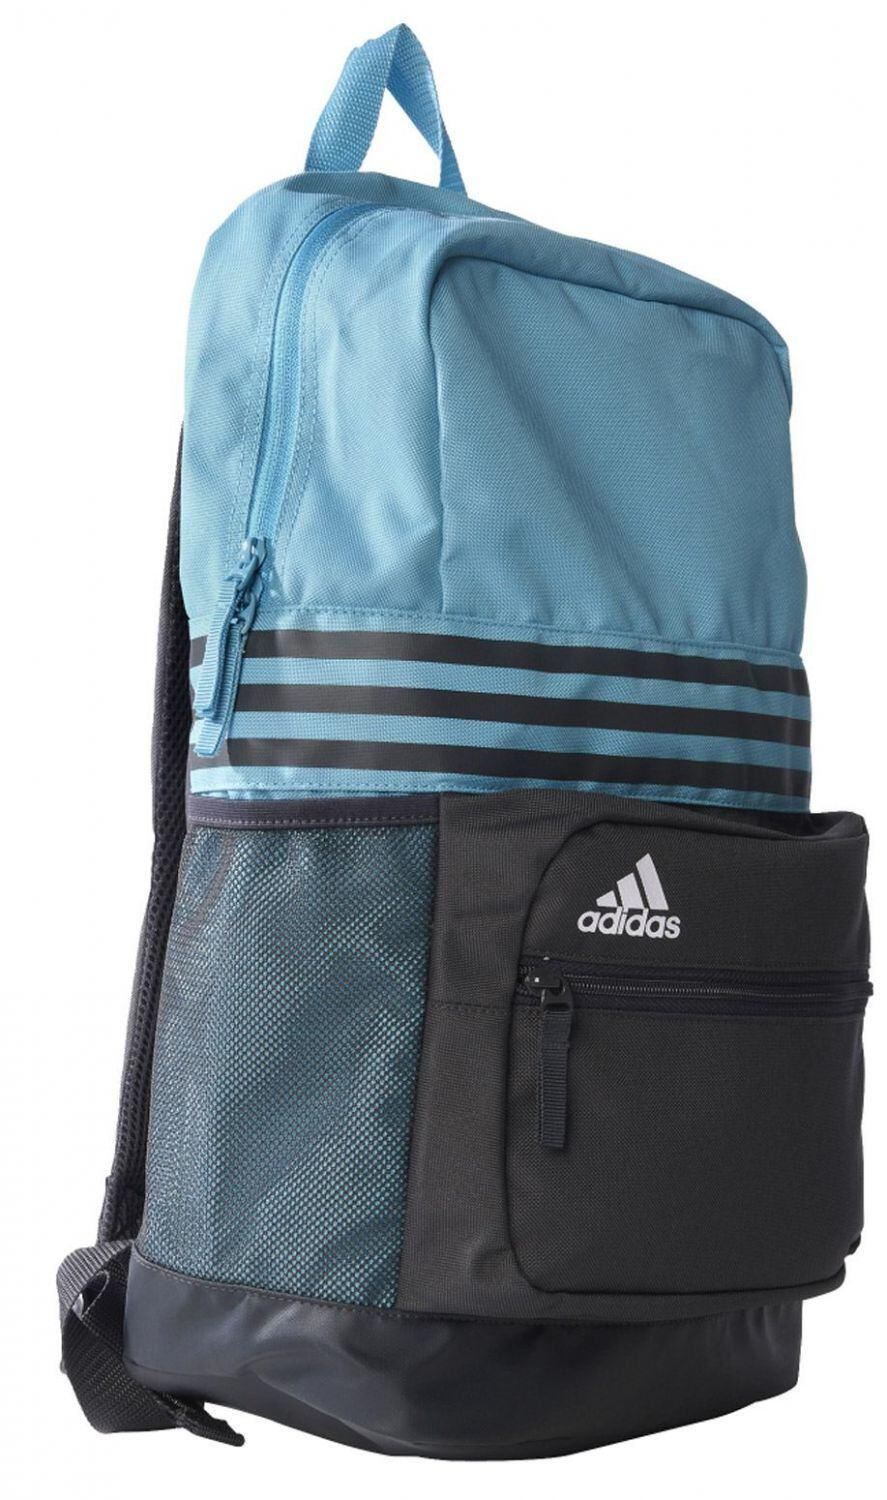 adidas-sports-backpack-rucksack-farbe-vapour-blue-f16-utility-black-f16-white-